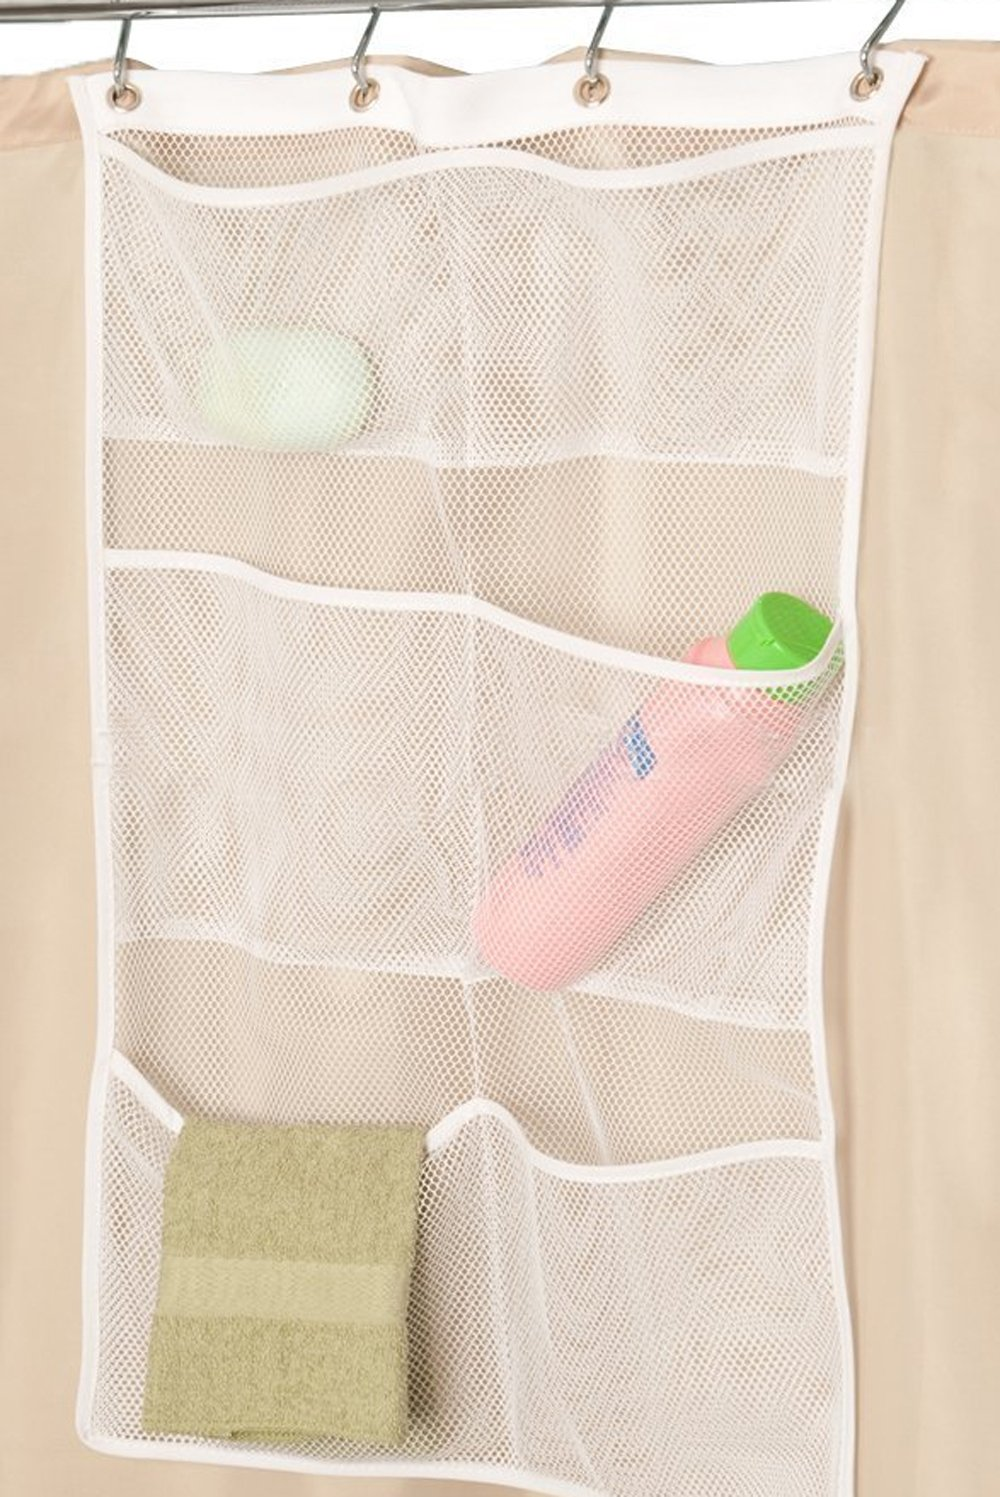 ALYER 6 Storage Pockets Hanging Mesh Shower Caddy,Space Saving Bathroom Accessories and Quick Dry Bath Organizer,White-Four Rings